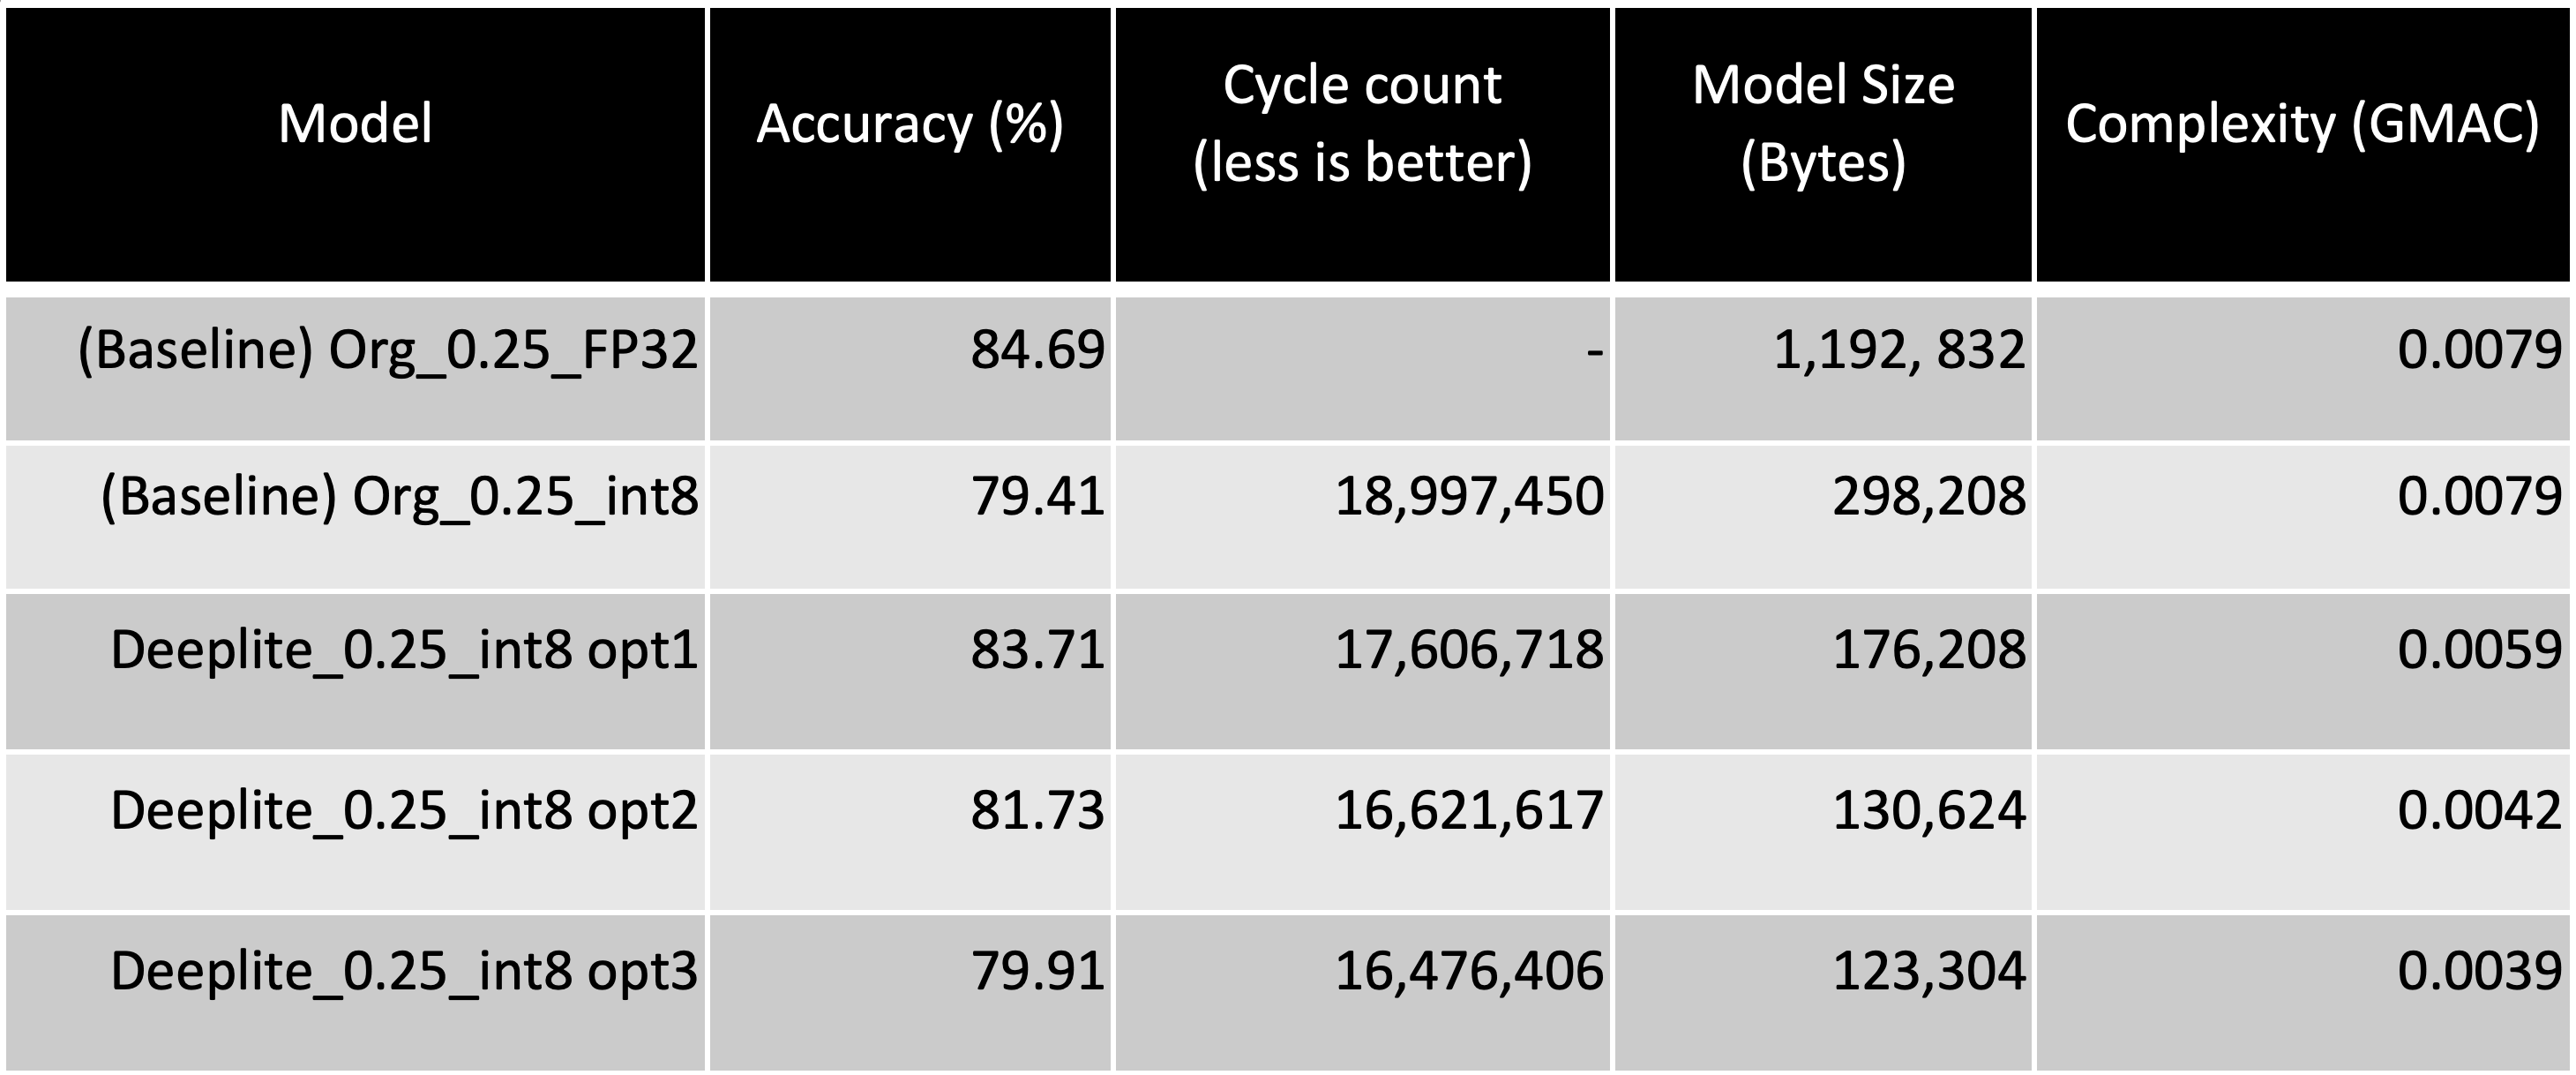 Deeplite DNN model optimization, improvements in size, complexity and accuracy